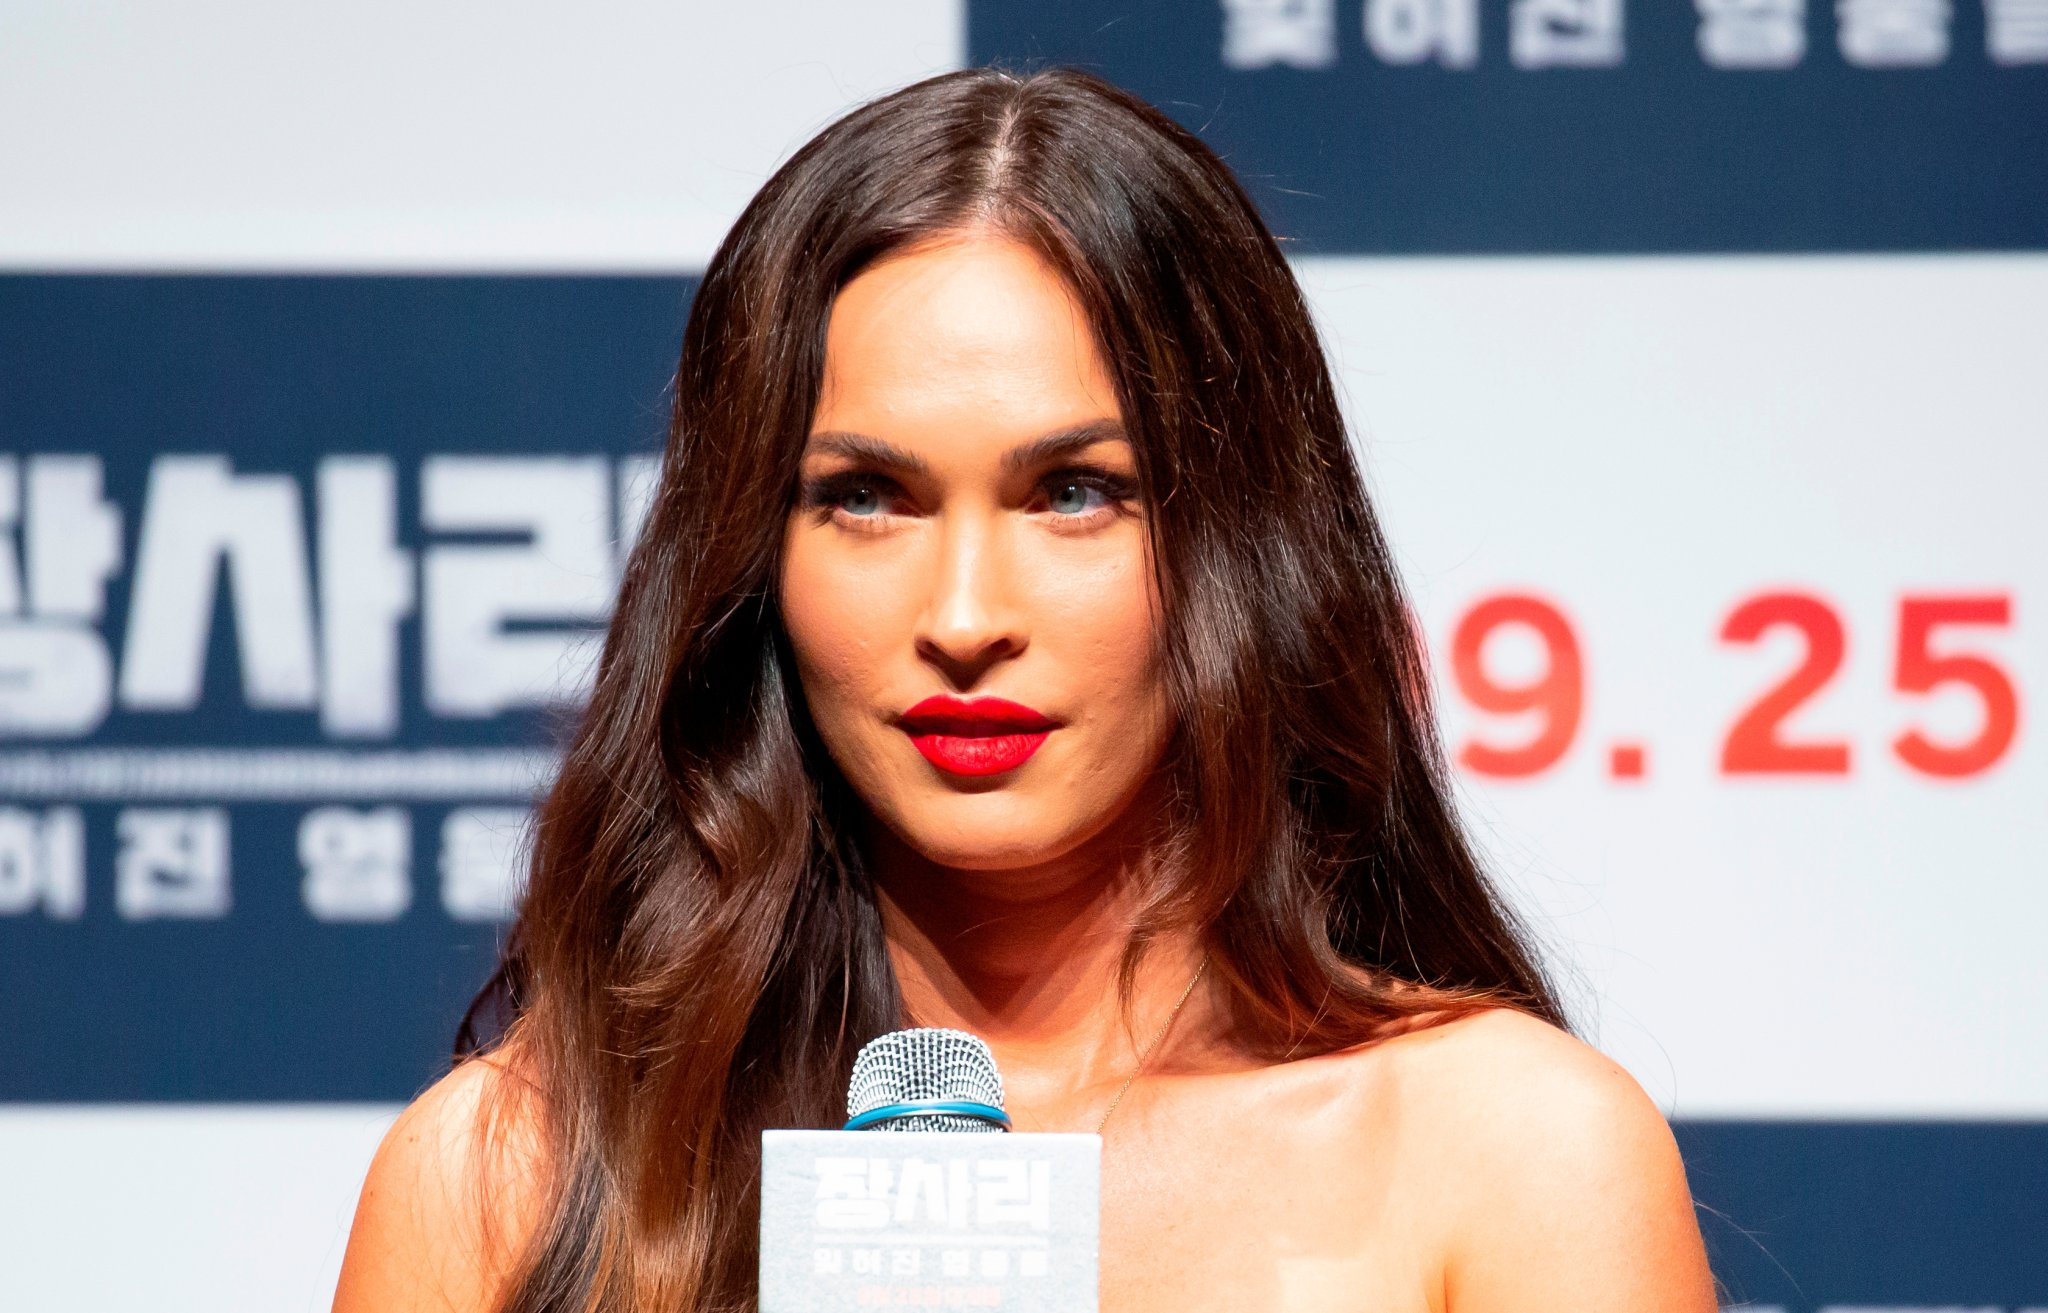 Megan Fox Hit Her 'Breaking Point' With Ex Brian Austin Green Before Instagram Callout